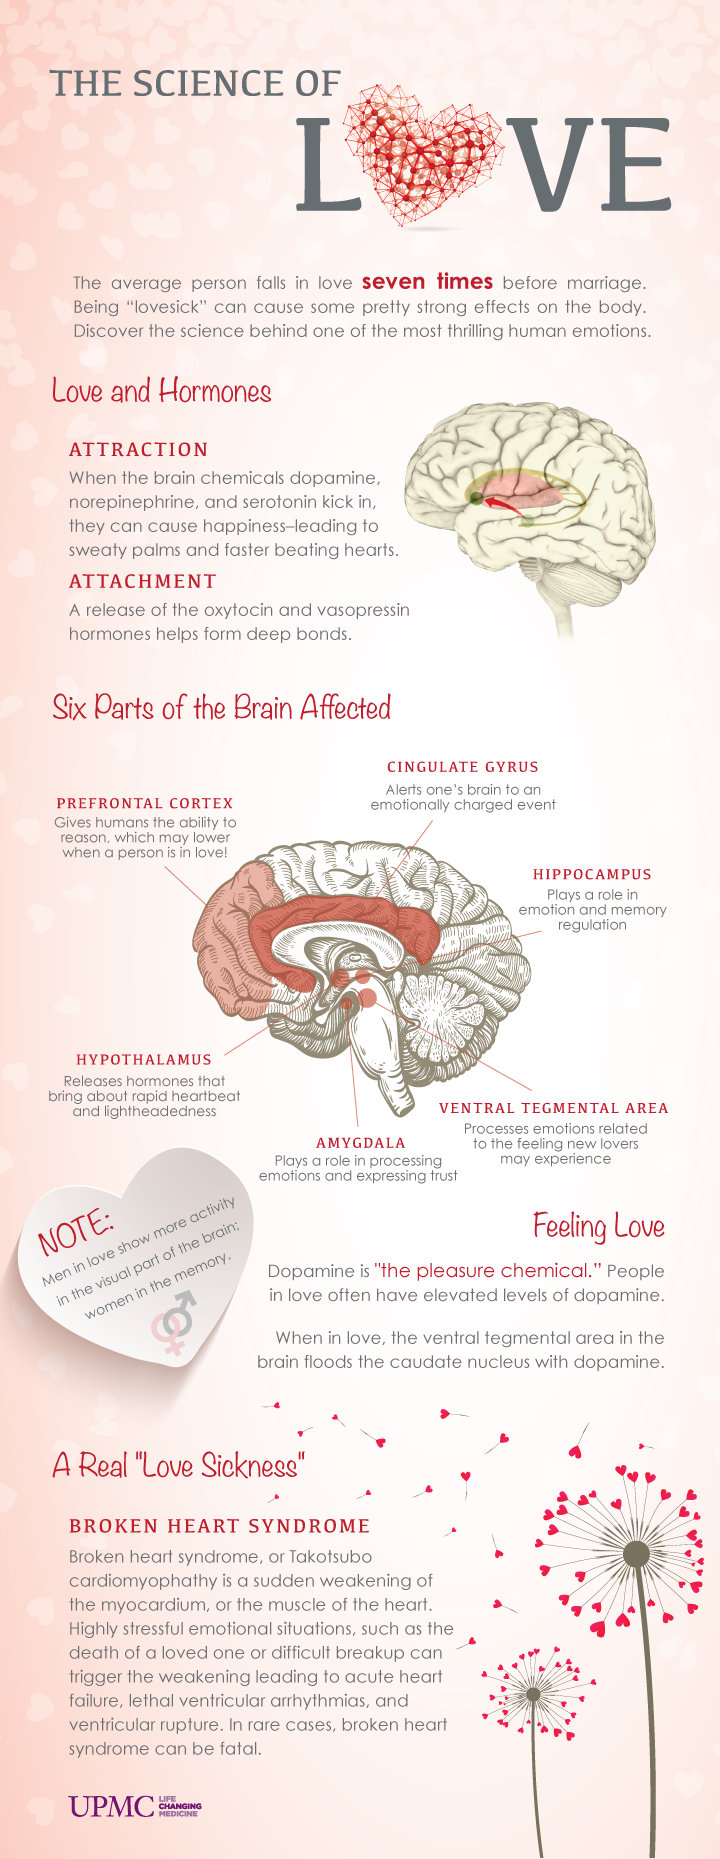 The science behind love